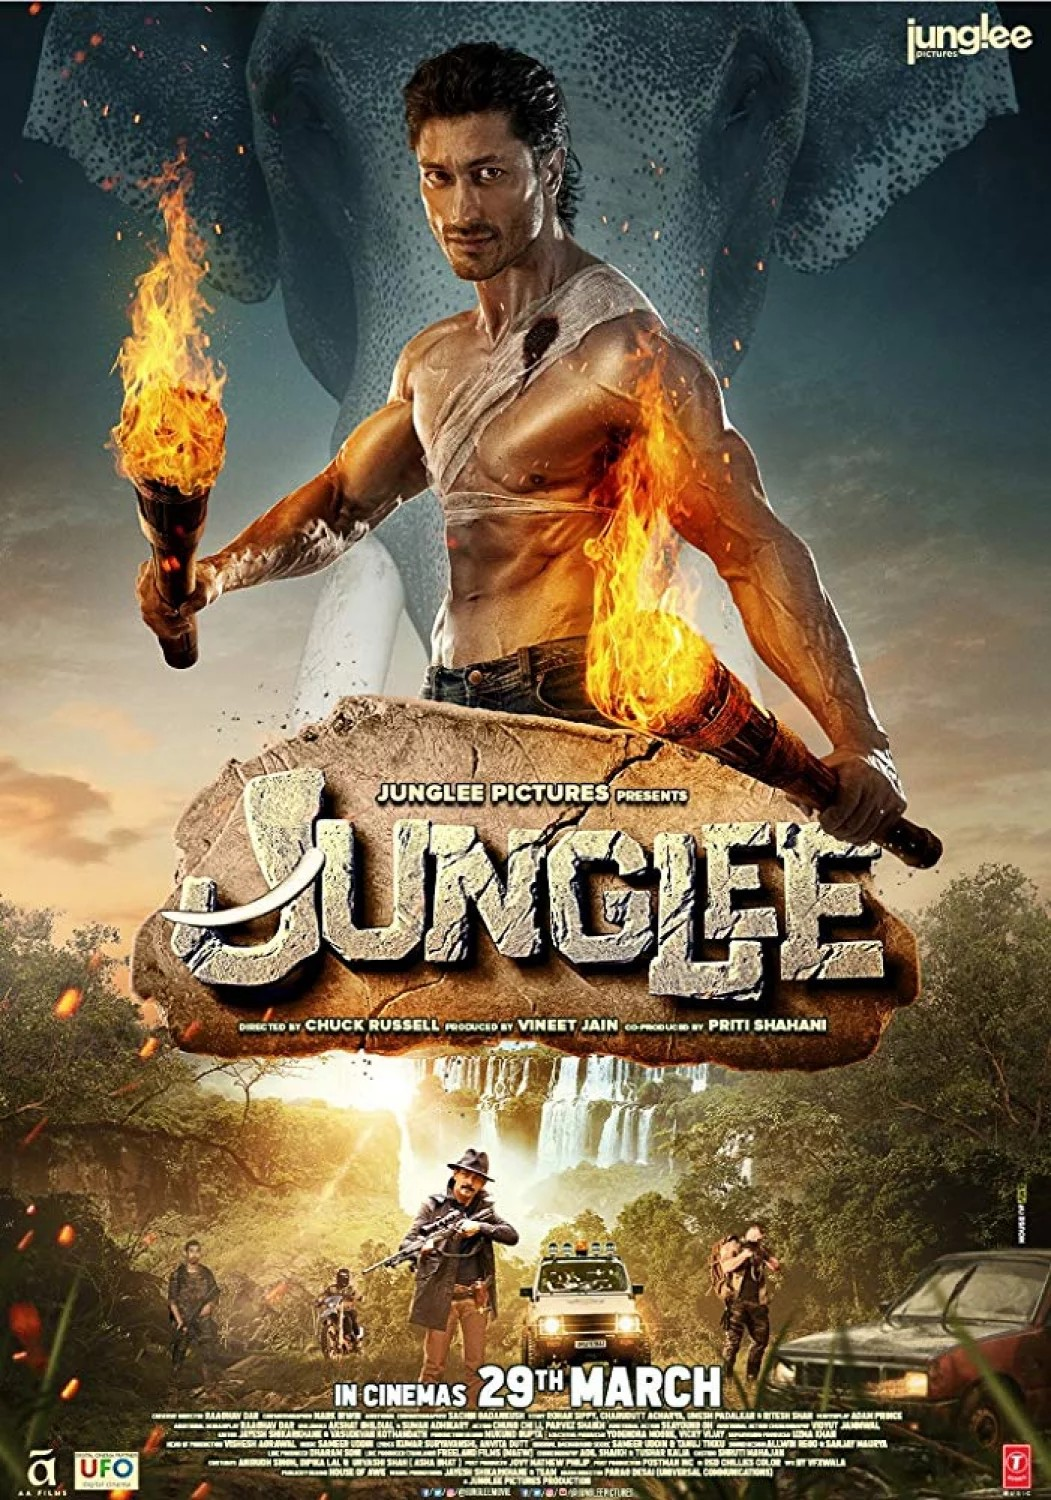 Junglee Movie Jacket